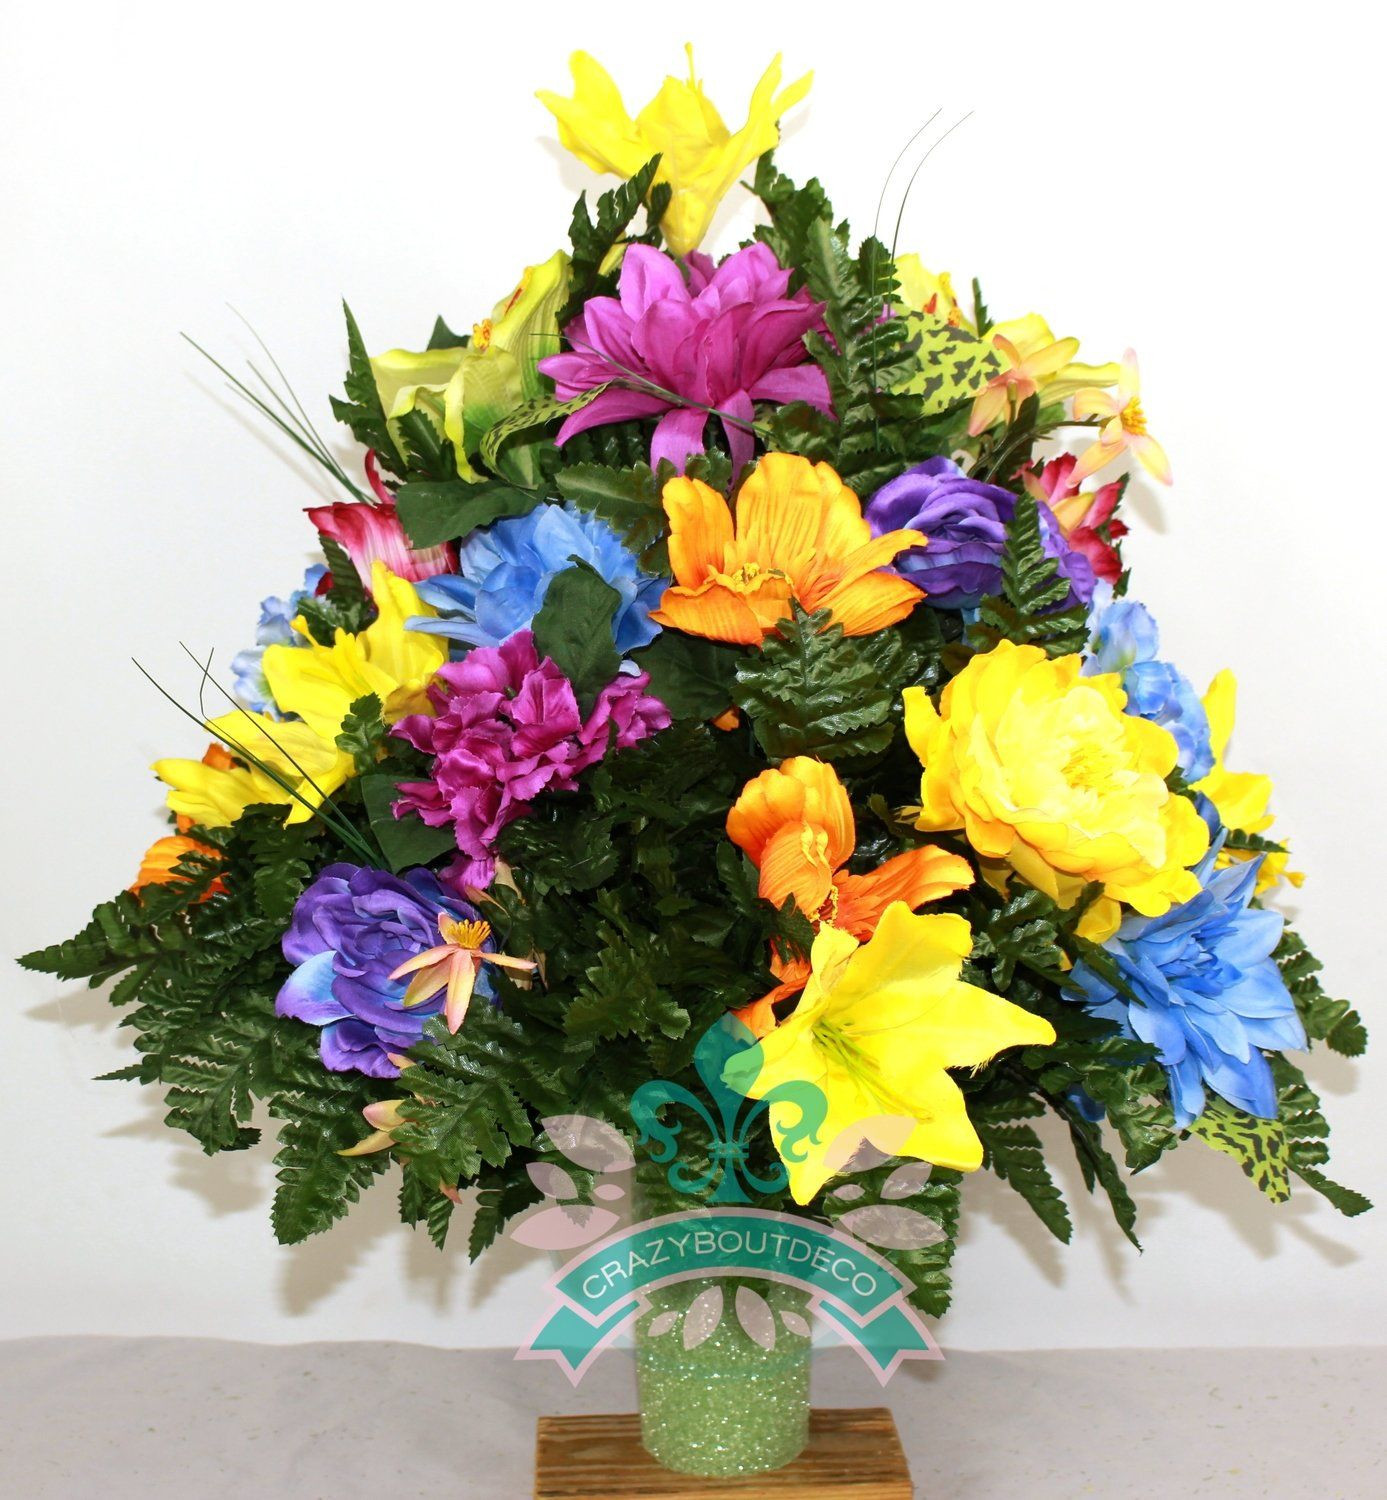 plastic flower vases for cemetery of beautiful xl spring mixture cemetery vase arrangement for 3 inch pertaining to beautiful xl spring mixture cemetery vase arrangement for 3 inch vase 42 9